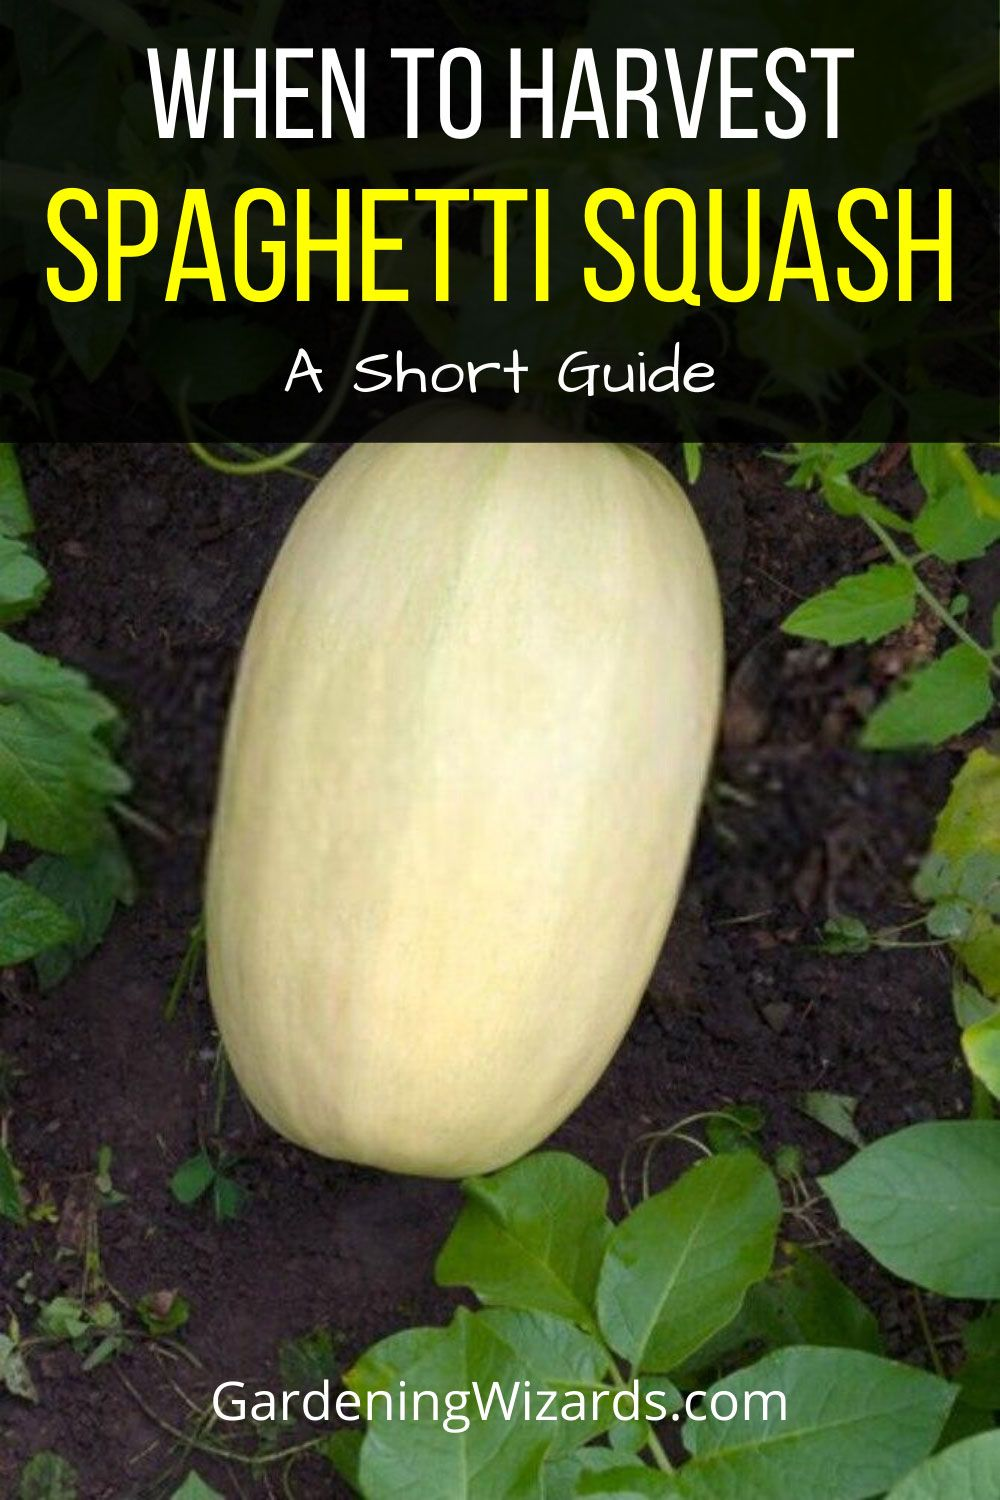 The Spaghetti Squash Is Winter Squash Plant So The Goal Of This Article Is To Give You An Add Spaghetti Squash Plant Growing Spaghetti Squash Spaghetti Squash